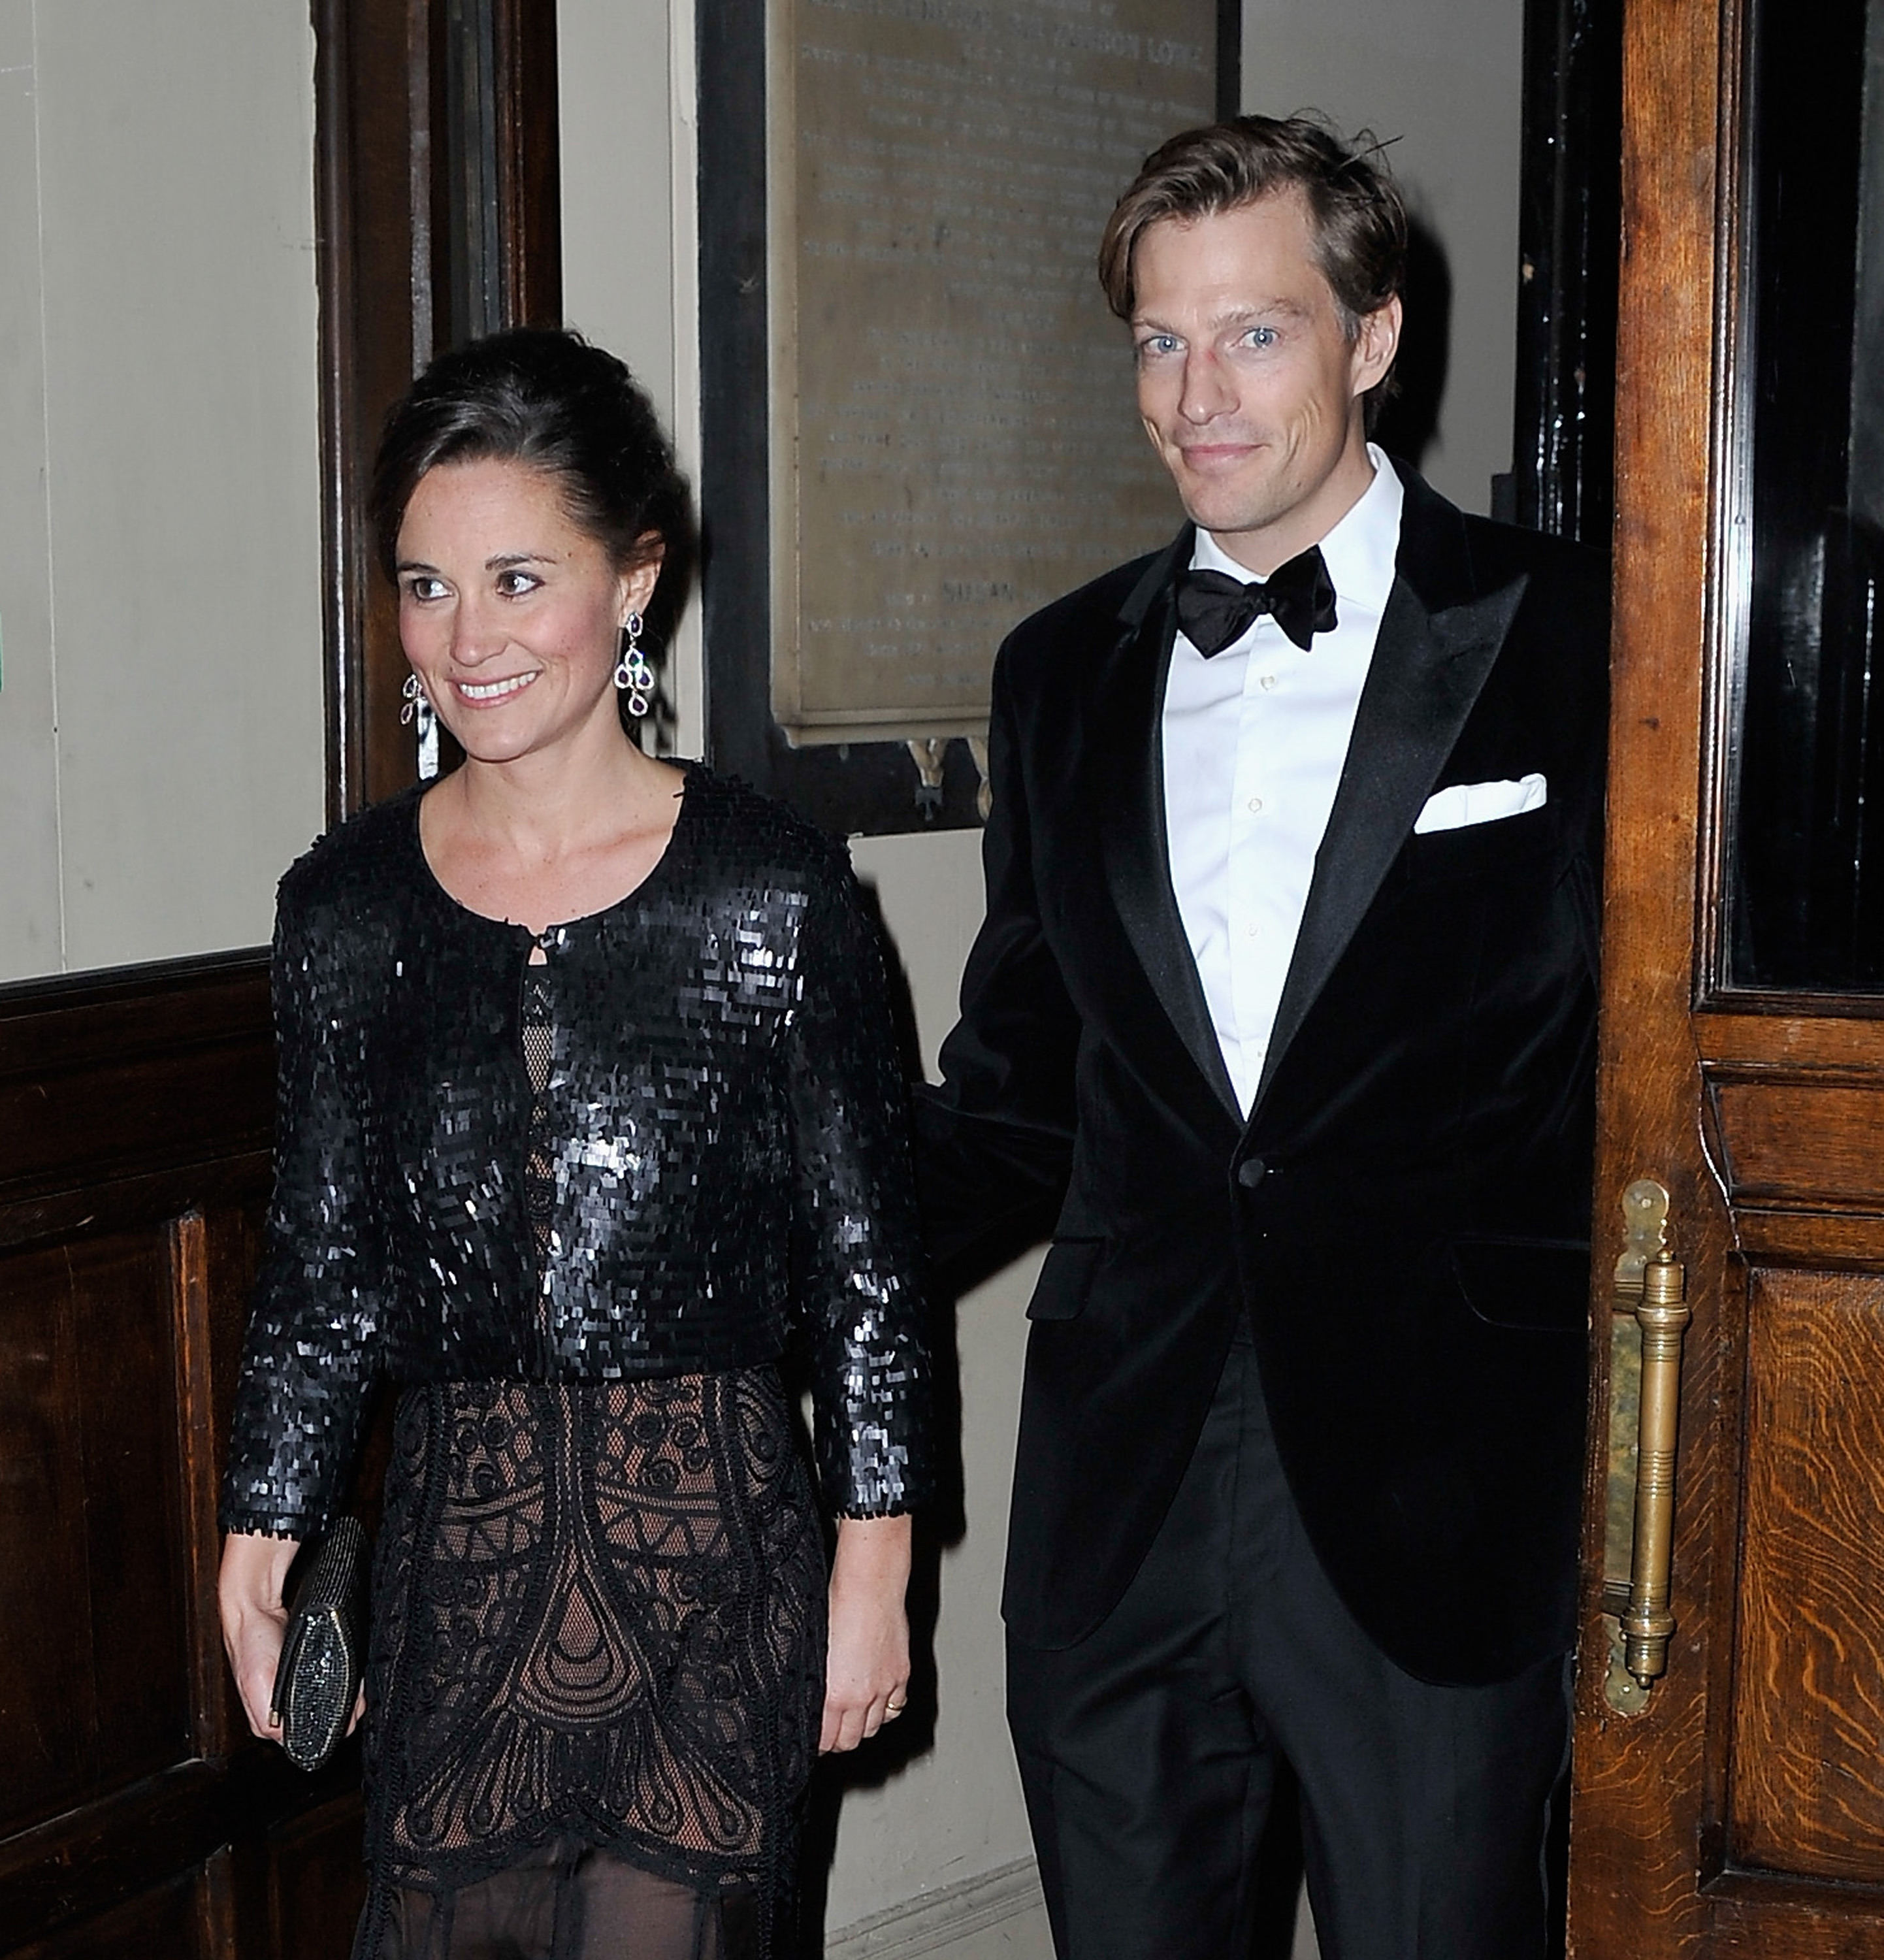 Pippa Middleton, sister of Duchess Kate, is engaged to banker Nico Jackson. They will wed in the new year.